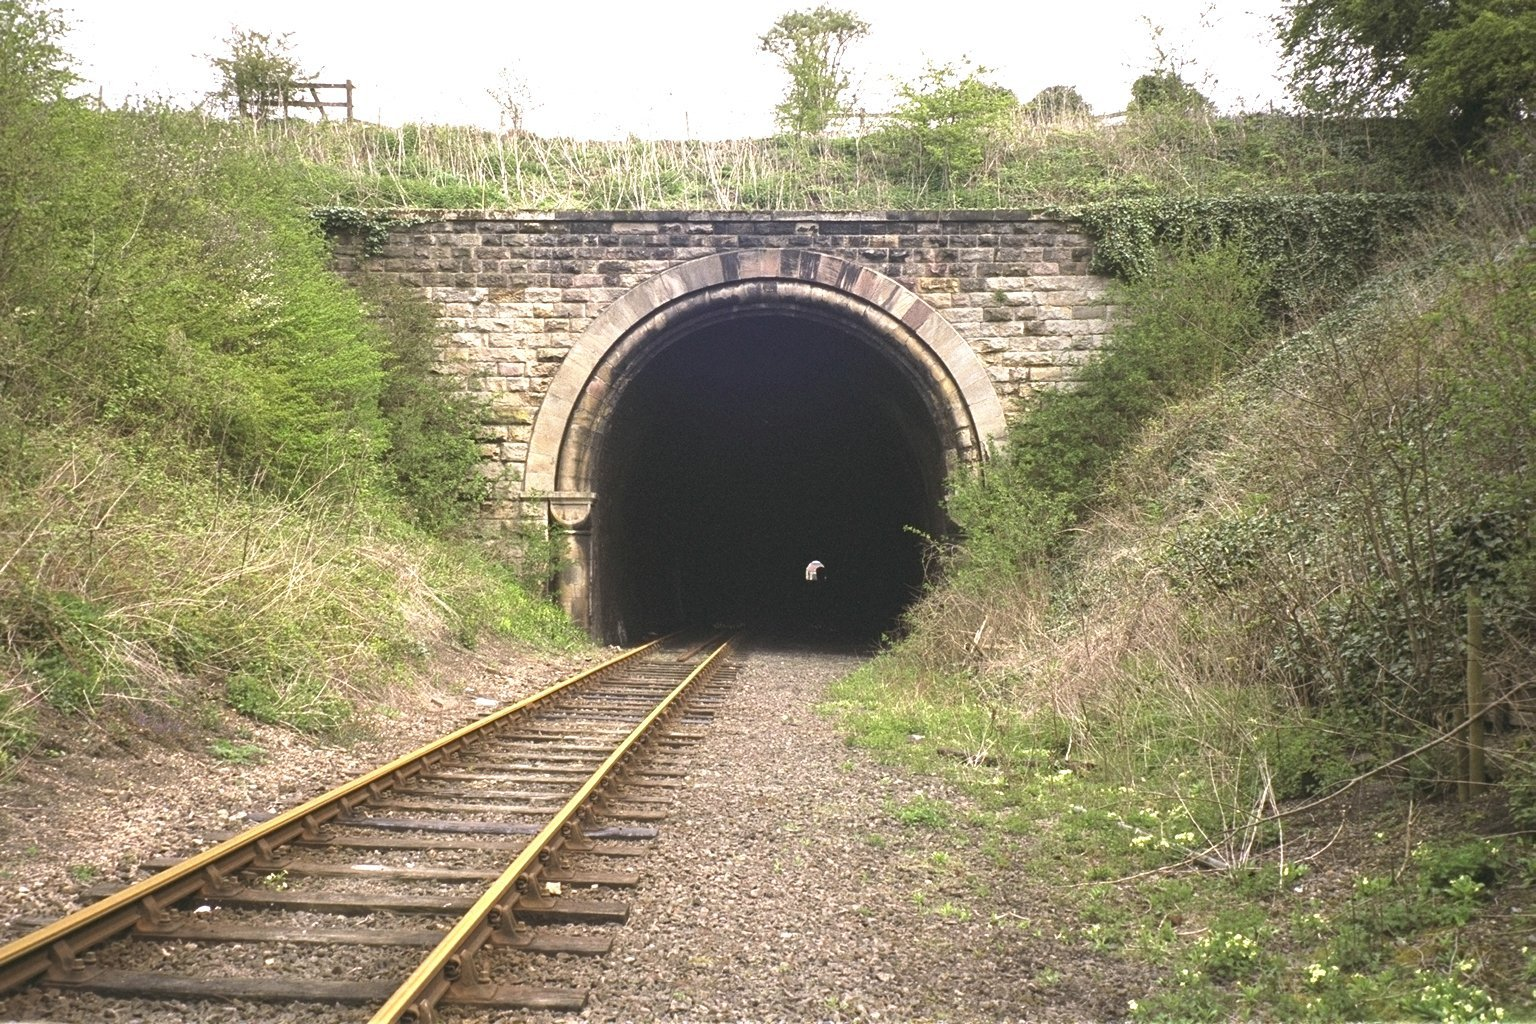 Nene Valley train tunnel (Octopussy - 1983)